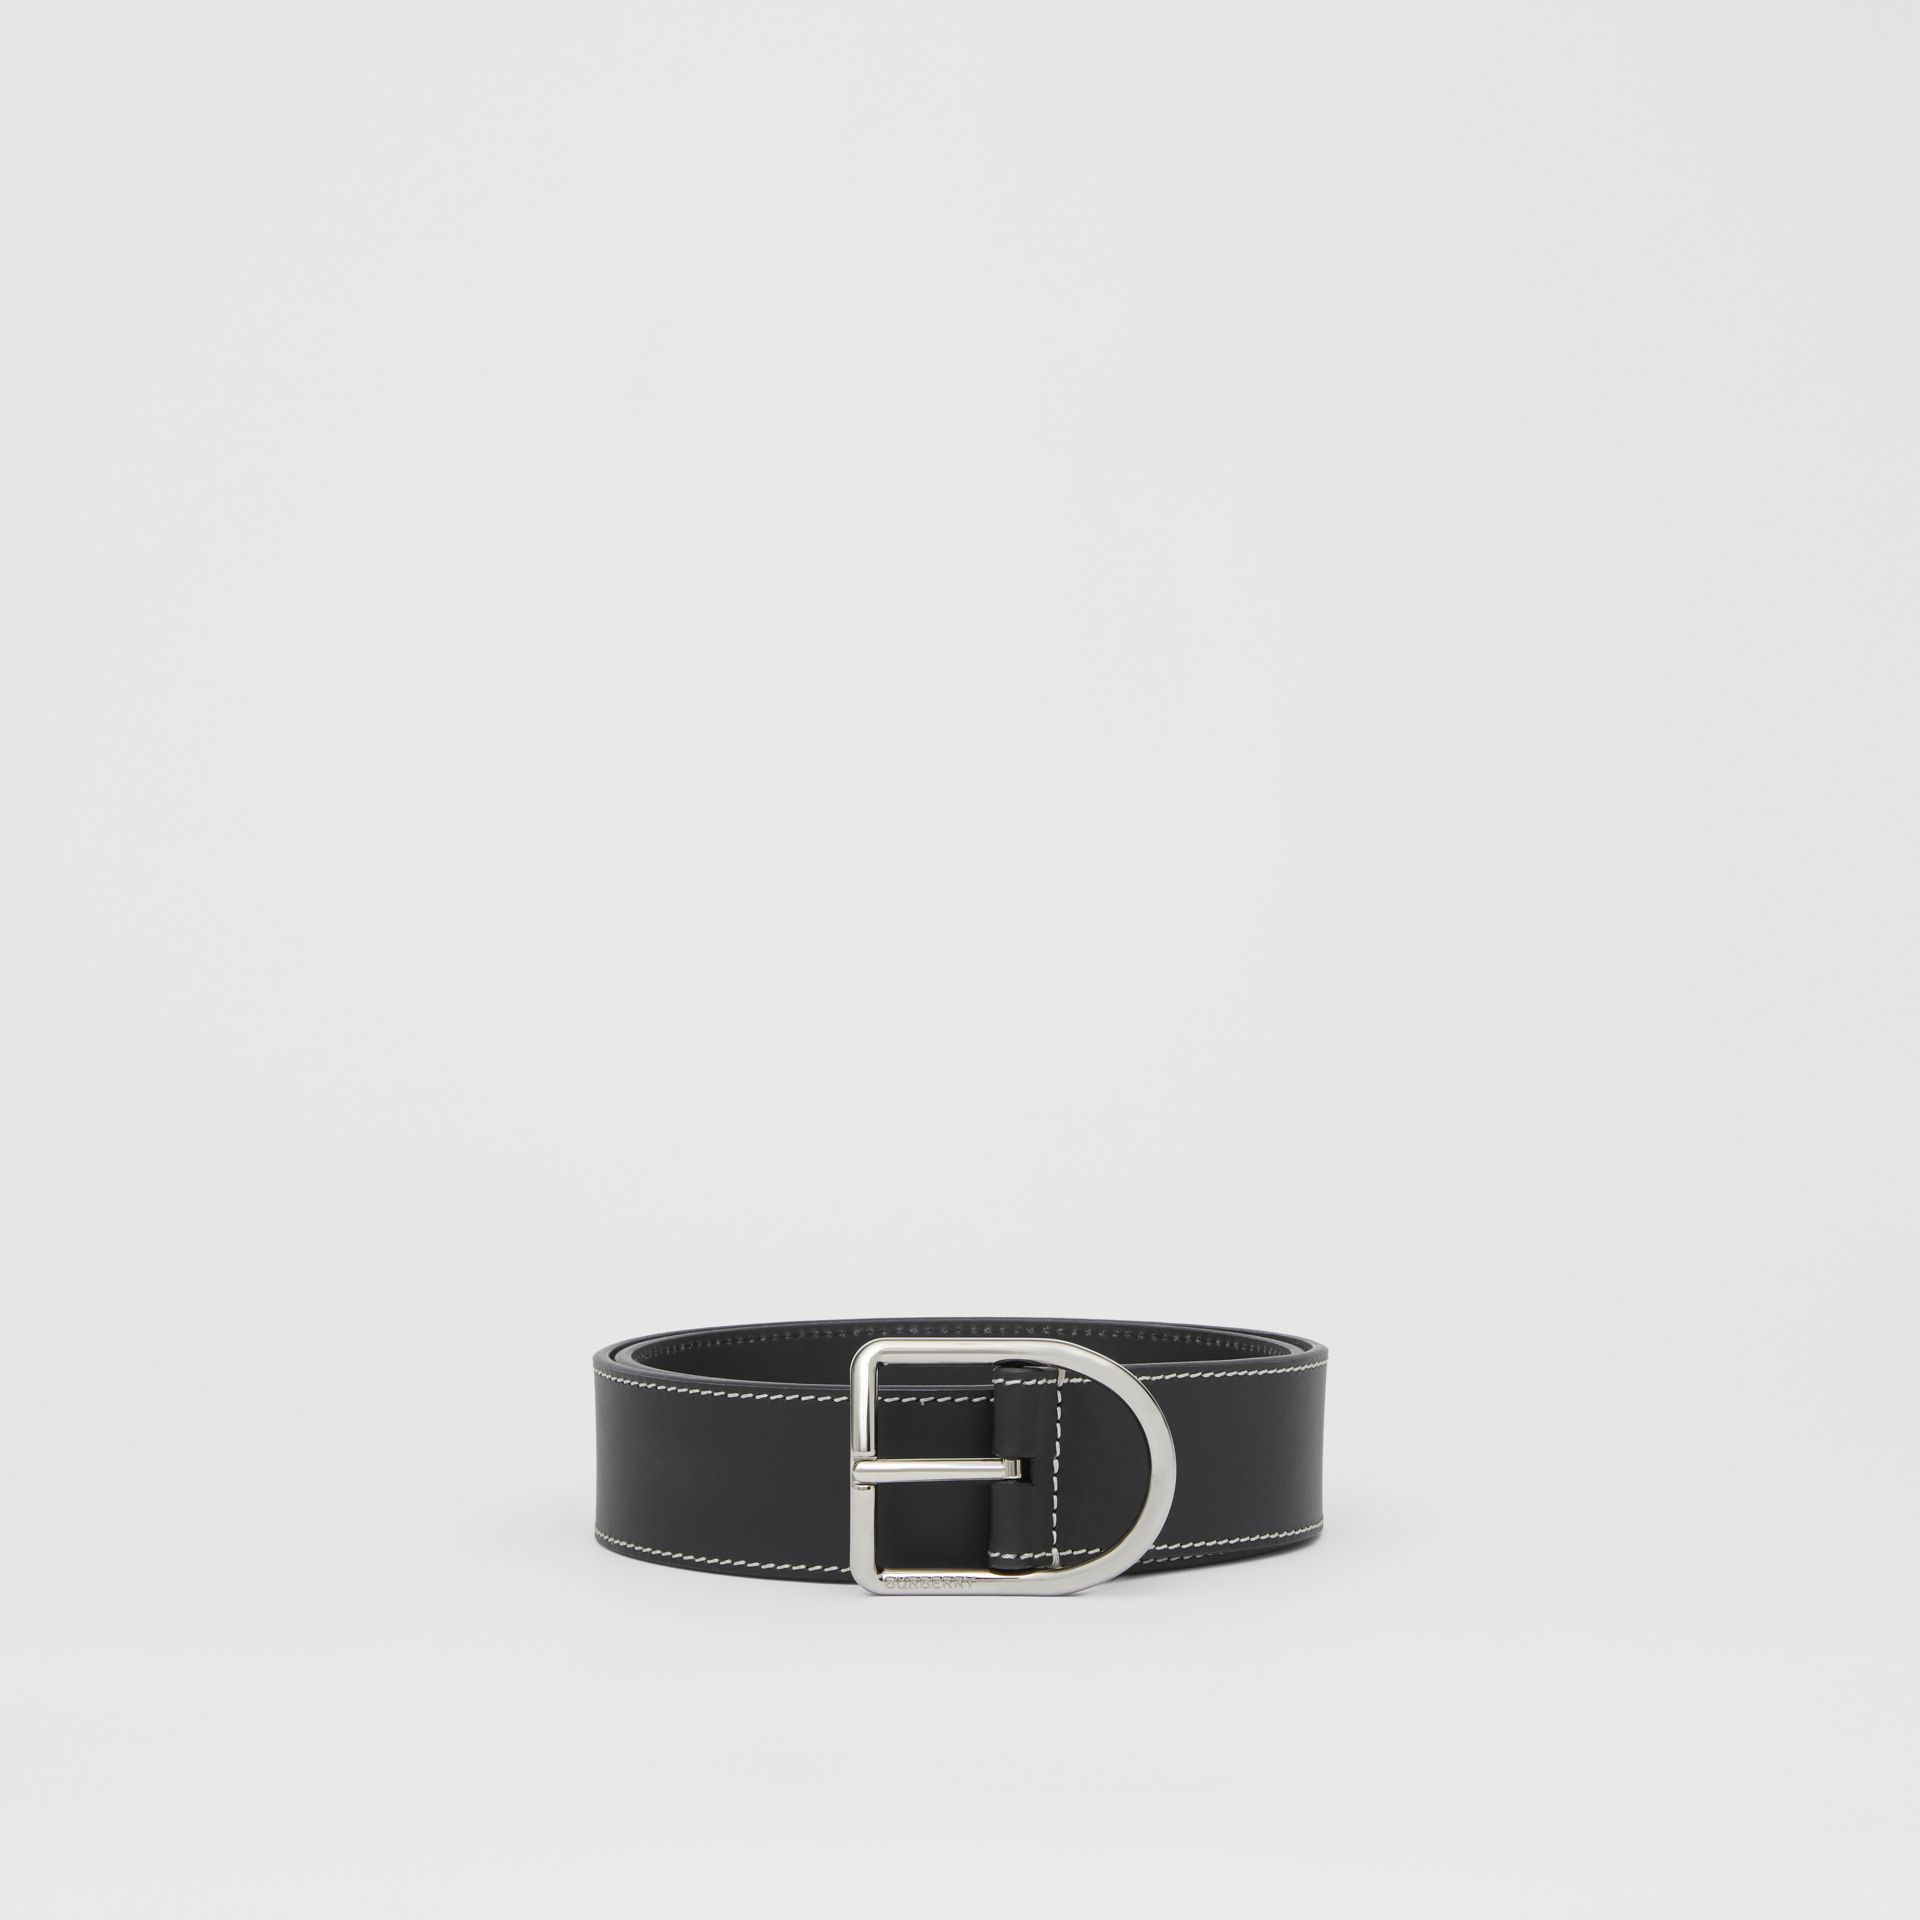 Topstitch Detail Leather Belt in Black - Men | Burberry Australia - gallery image 3